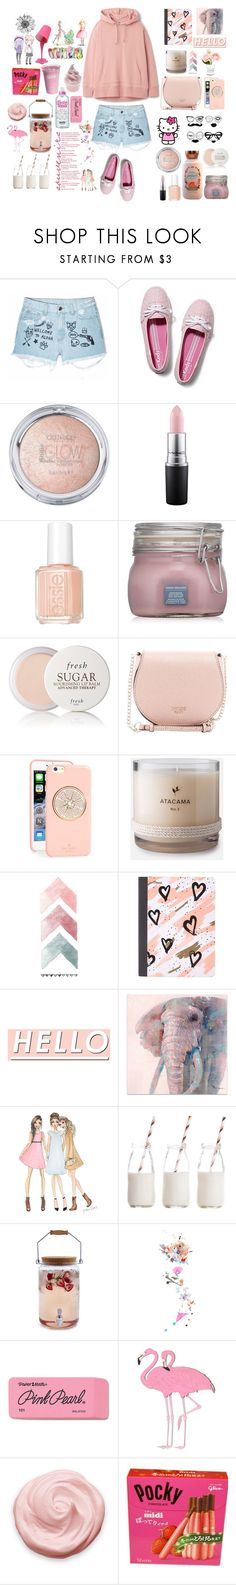 """""""A Pink Mix"""" by christinemusal ❤ liked on Polyvore featuring Aloha From Deer, Keds, Hello Kitty, MAC Cosmetics, Essie, Fresh, GUESS, Kate Spade, Mead and Chanel"""